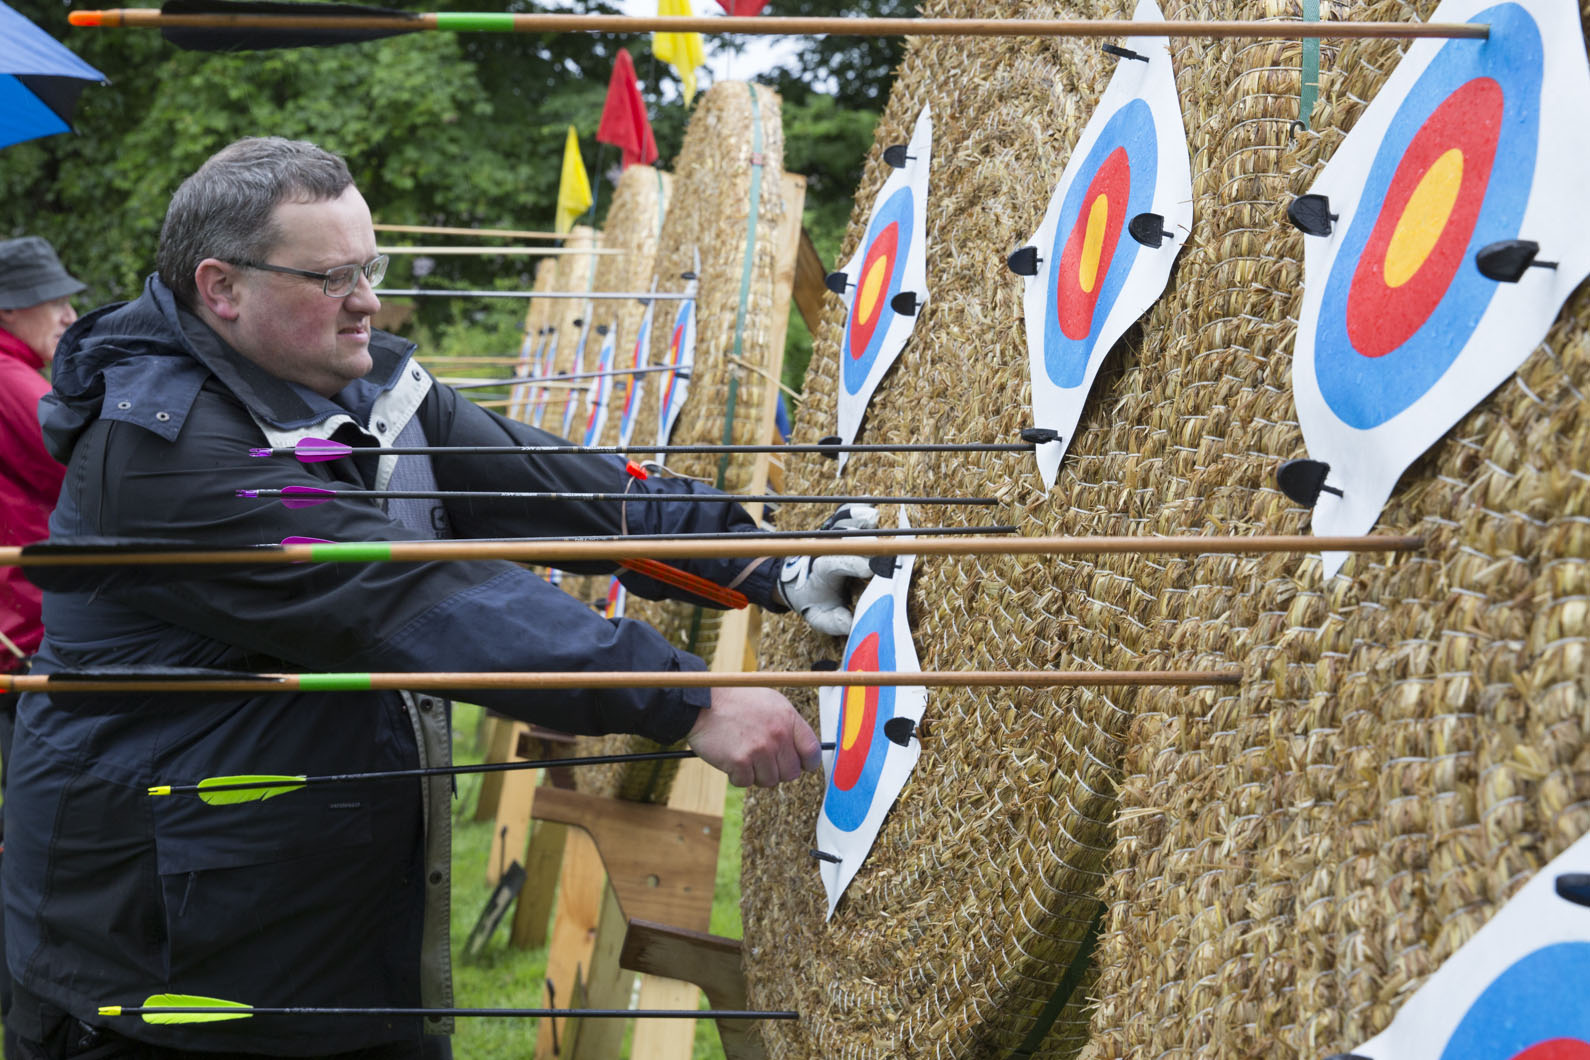 Dennis Nutt removes arrows from the targets during the butt round of the Ancient Society of Kilwinning Archers open Papingo. The butt round was held to determine the order in which the archers would compete.